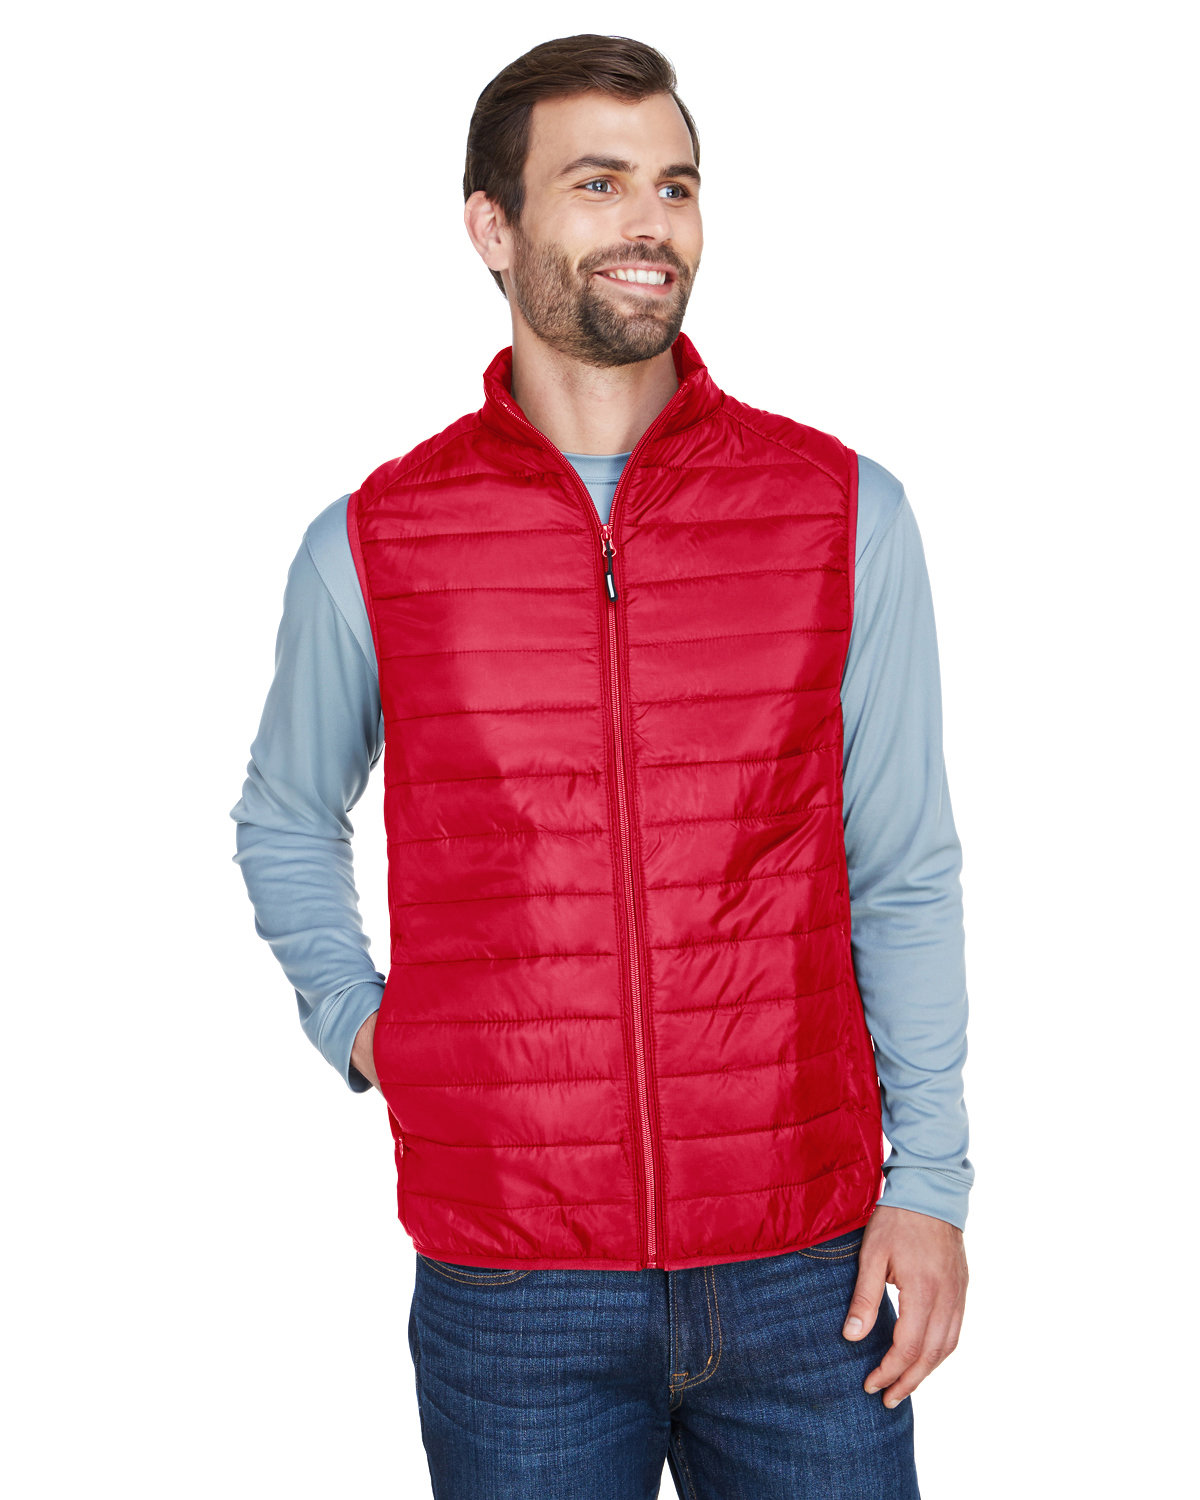 Core 365 Men's Prevail Packable Puffer Vest CLASSIC RED